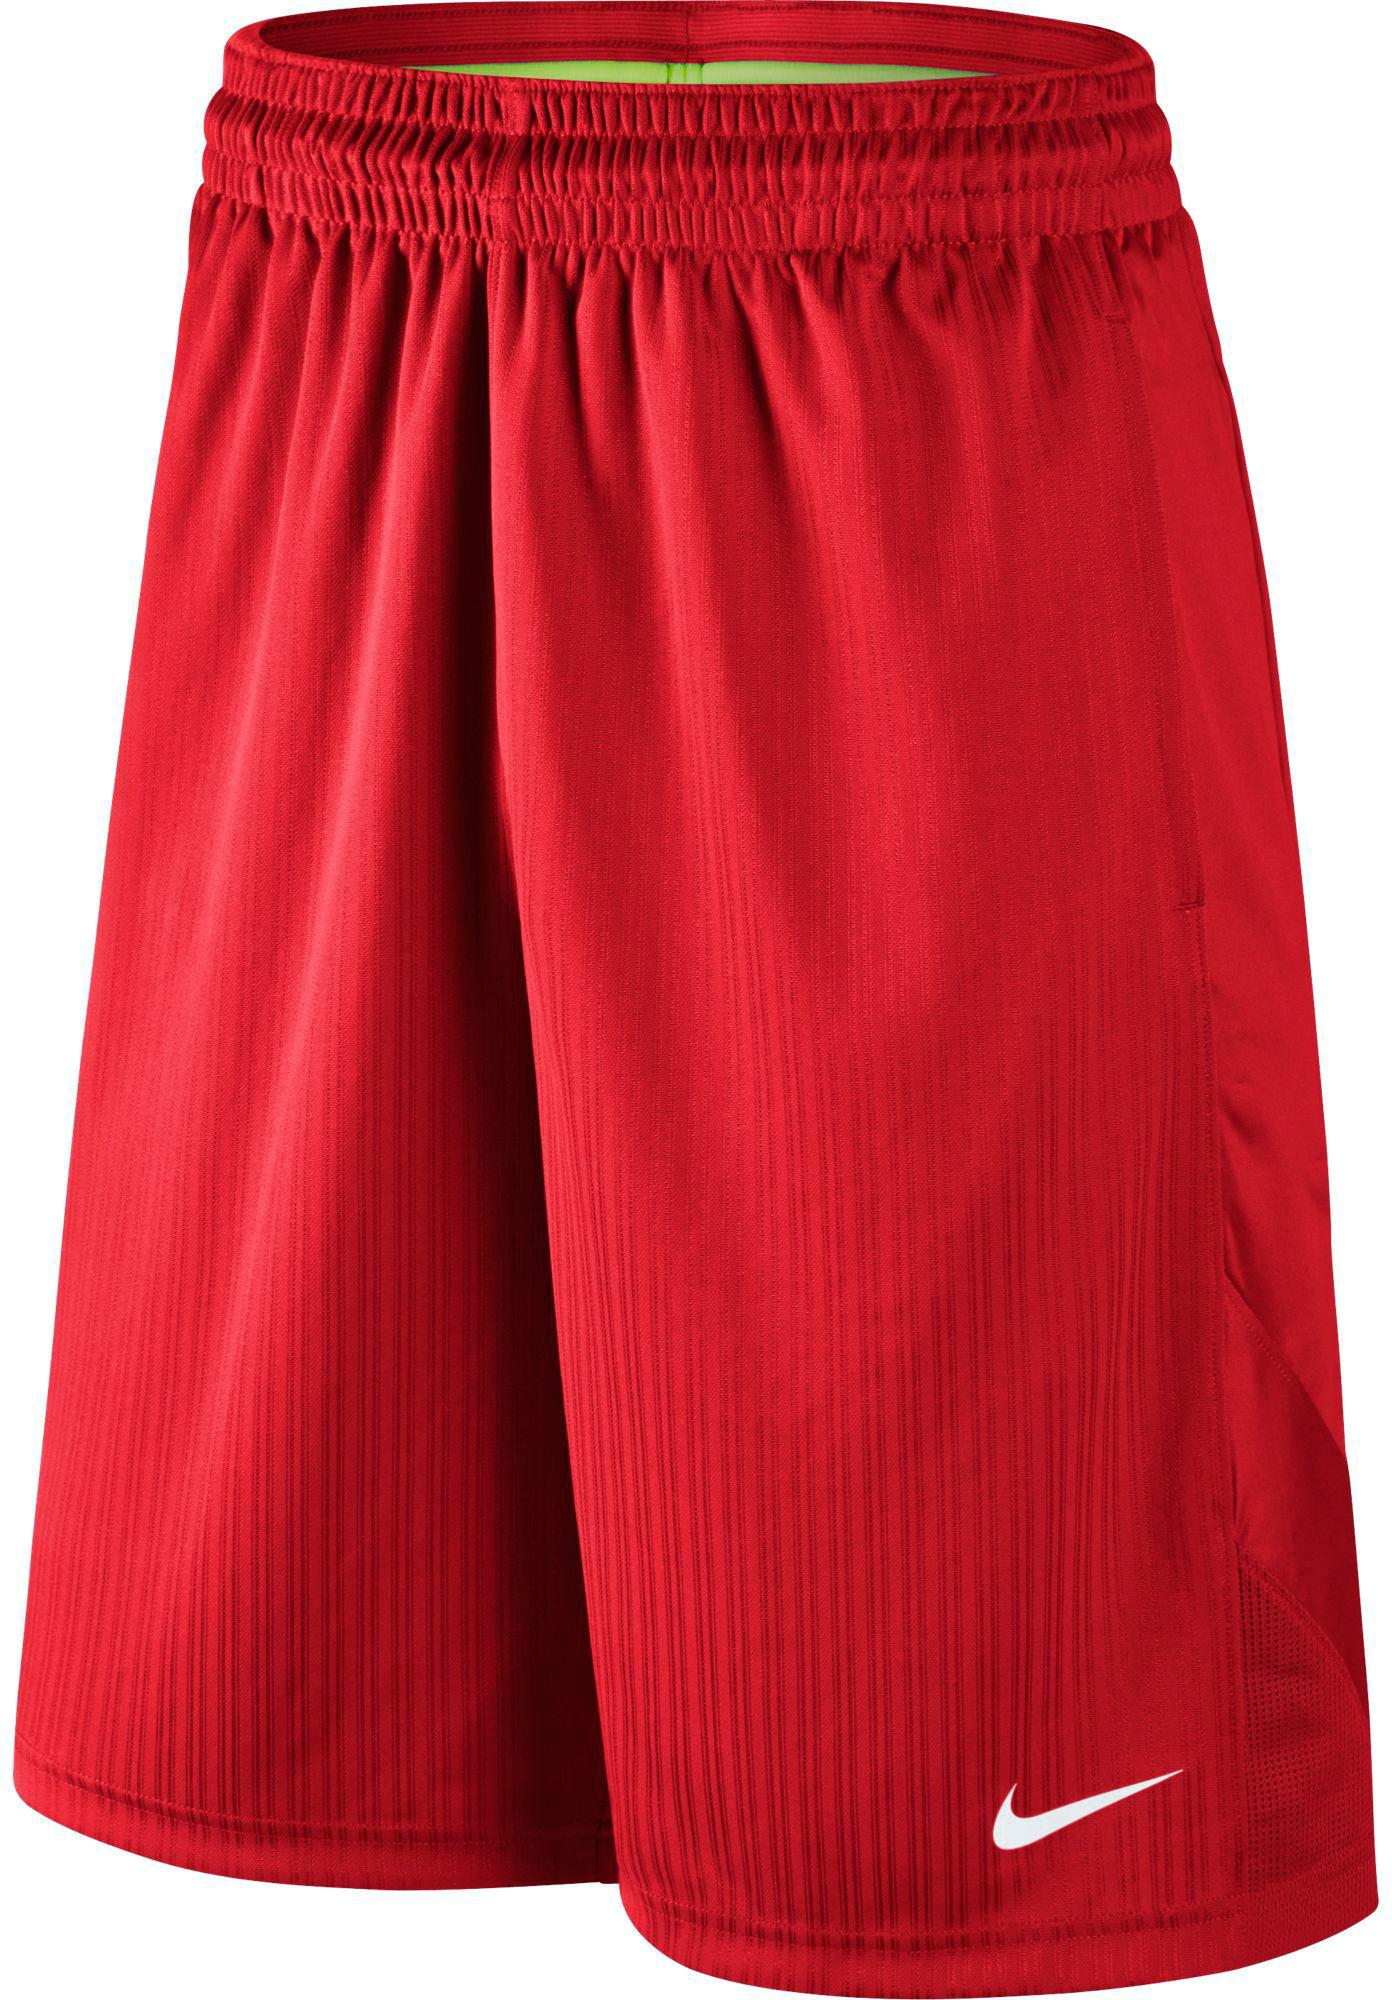 21566fcf40f Lyst - Nike Layup 2.0 Basketball Shorts in Red for Men